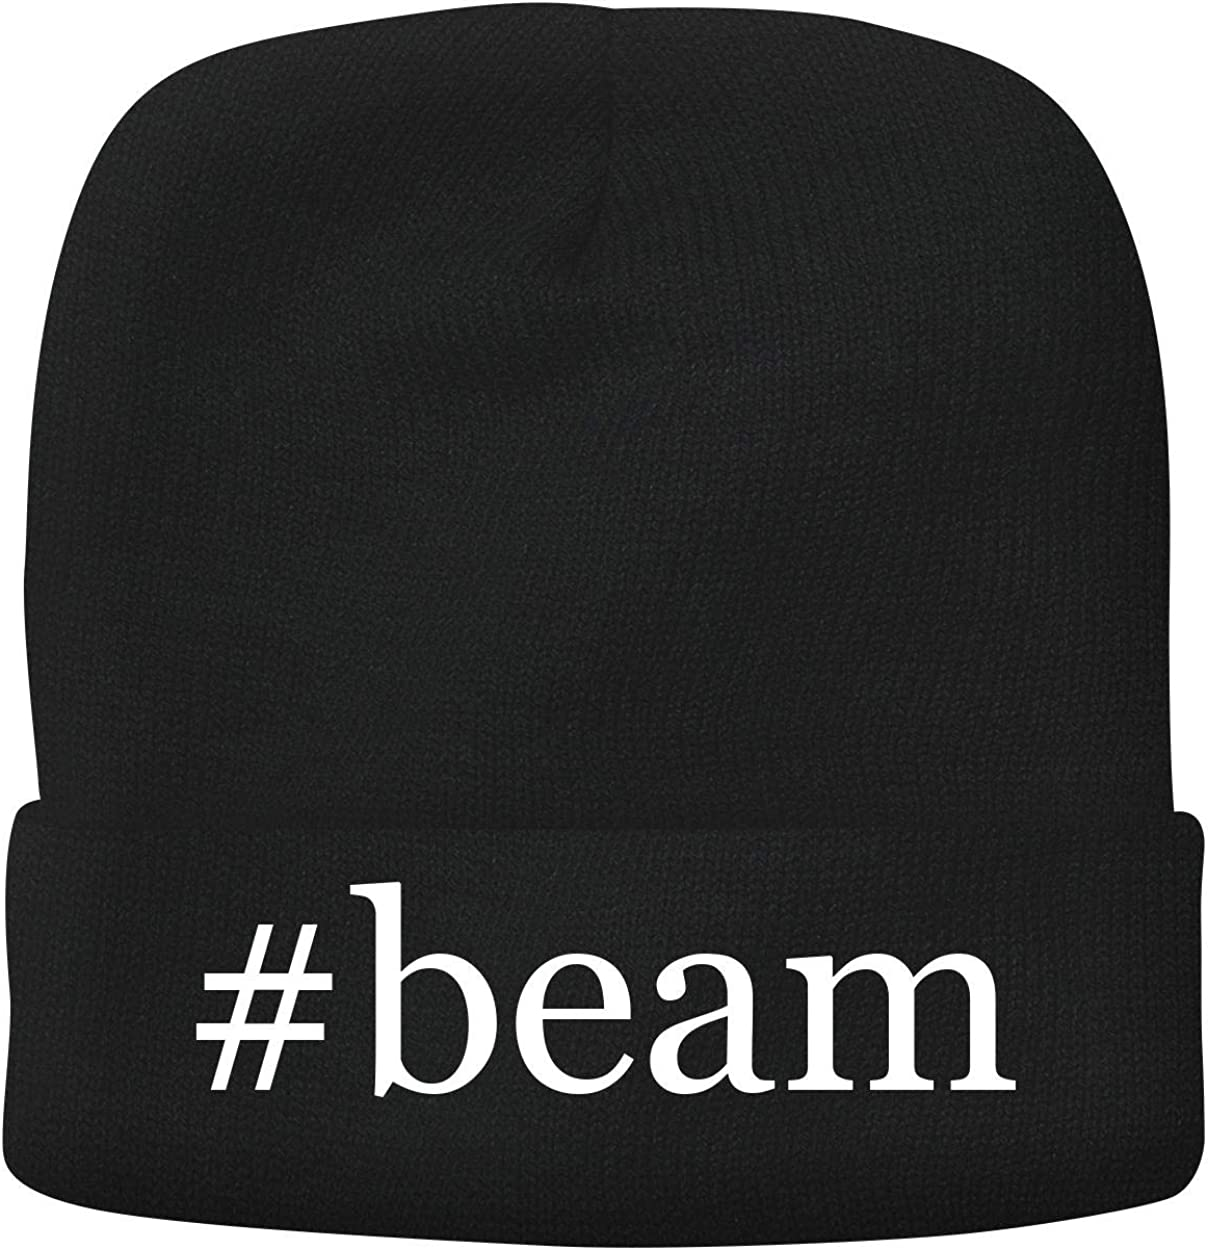 #Beam - Adult Hashtag Comfortable Fleece Lined Beanie 714gt62BesuL